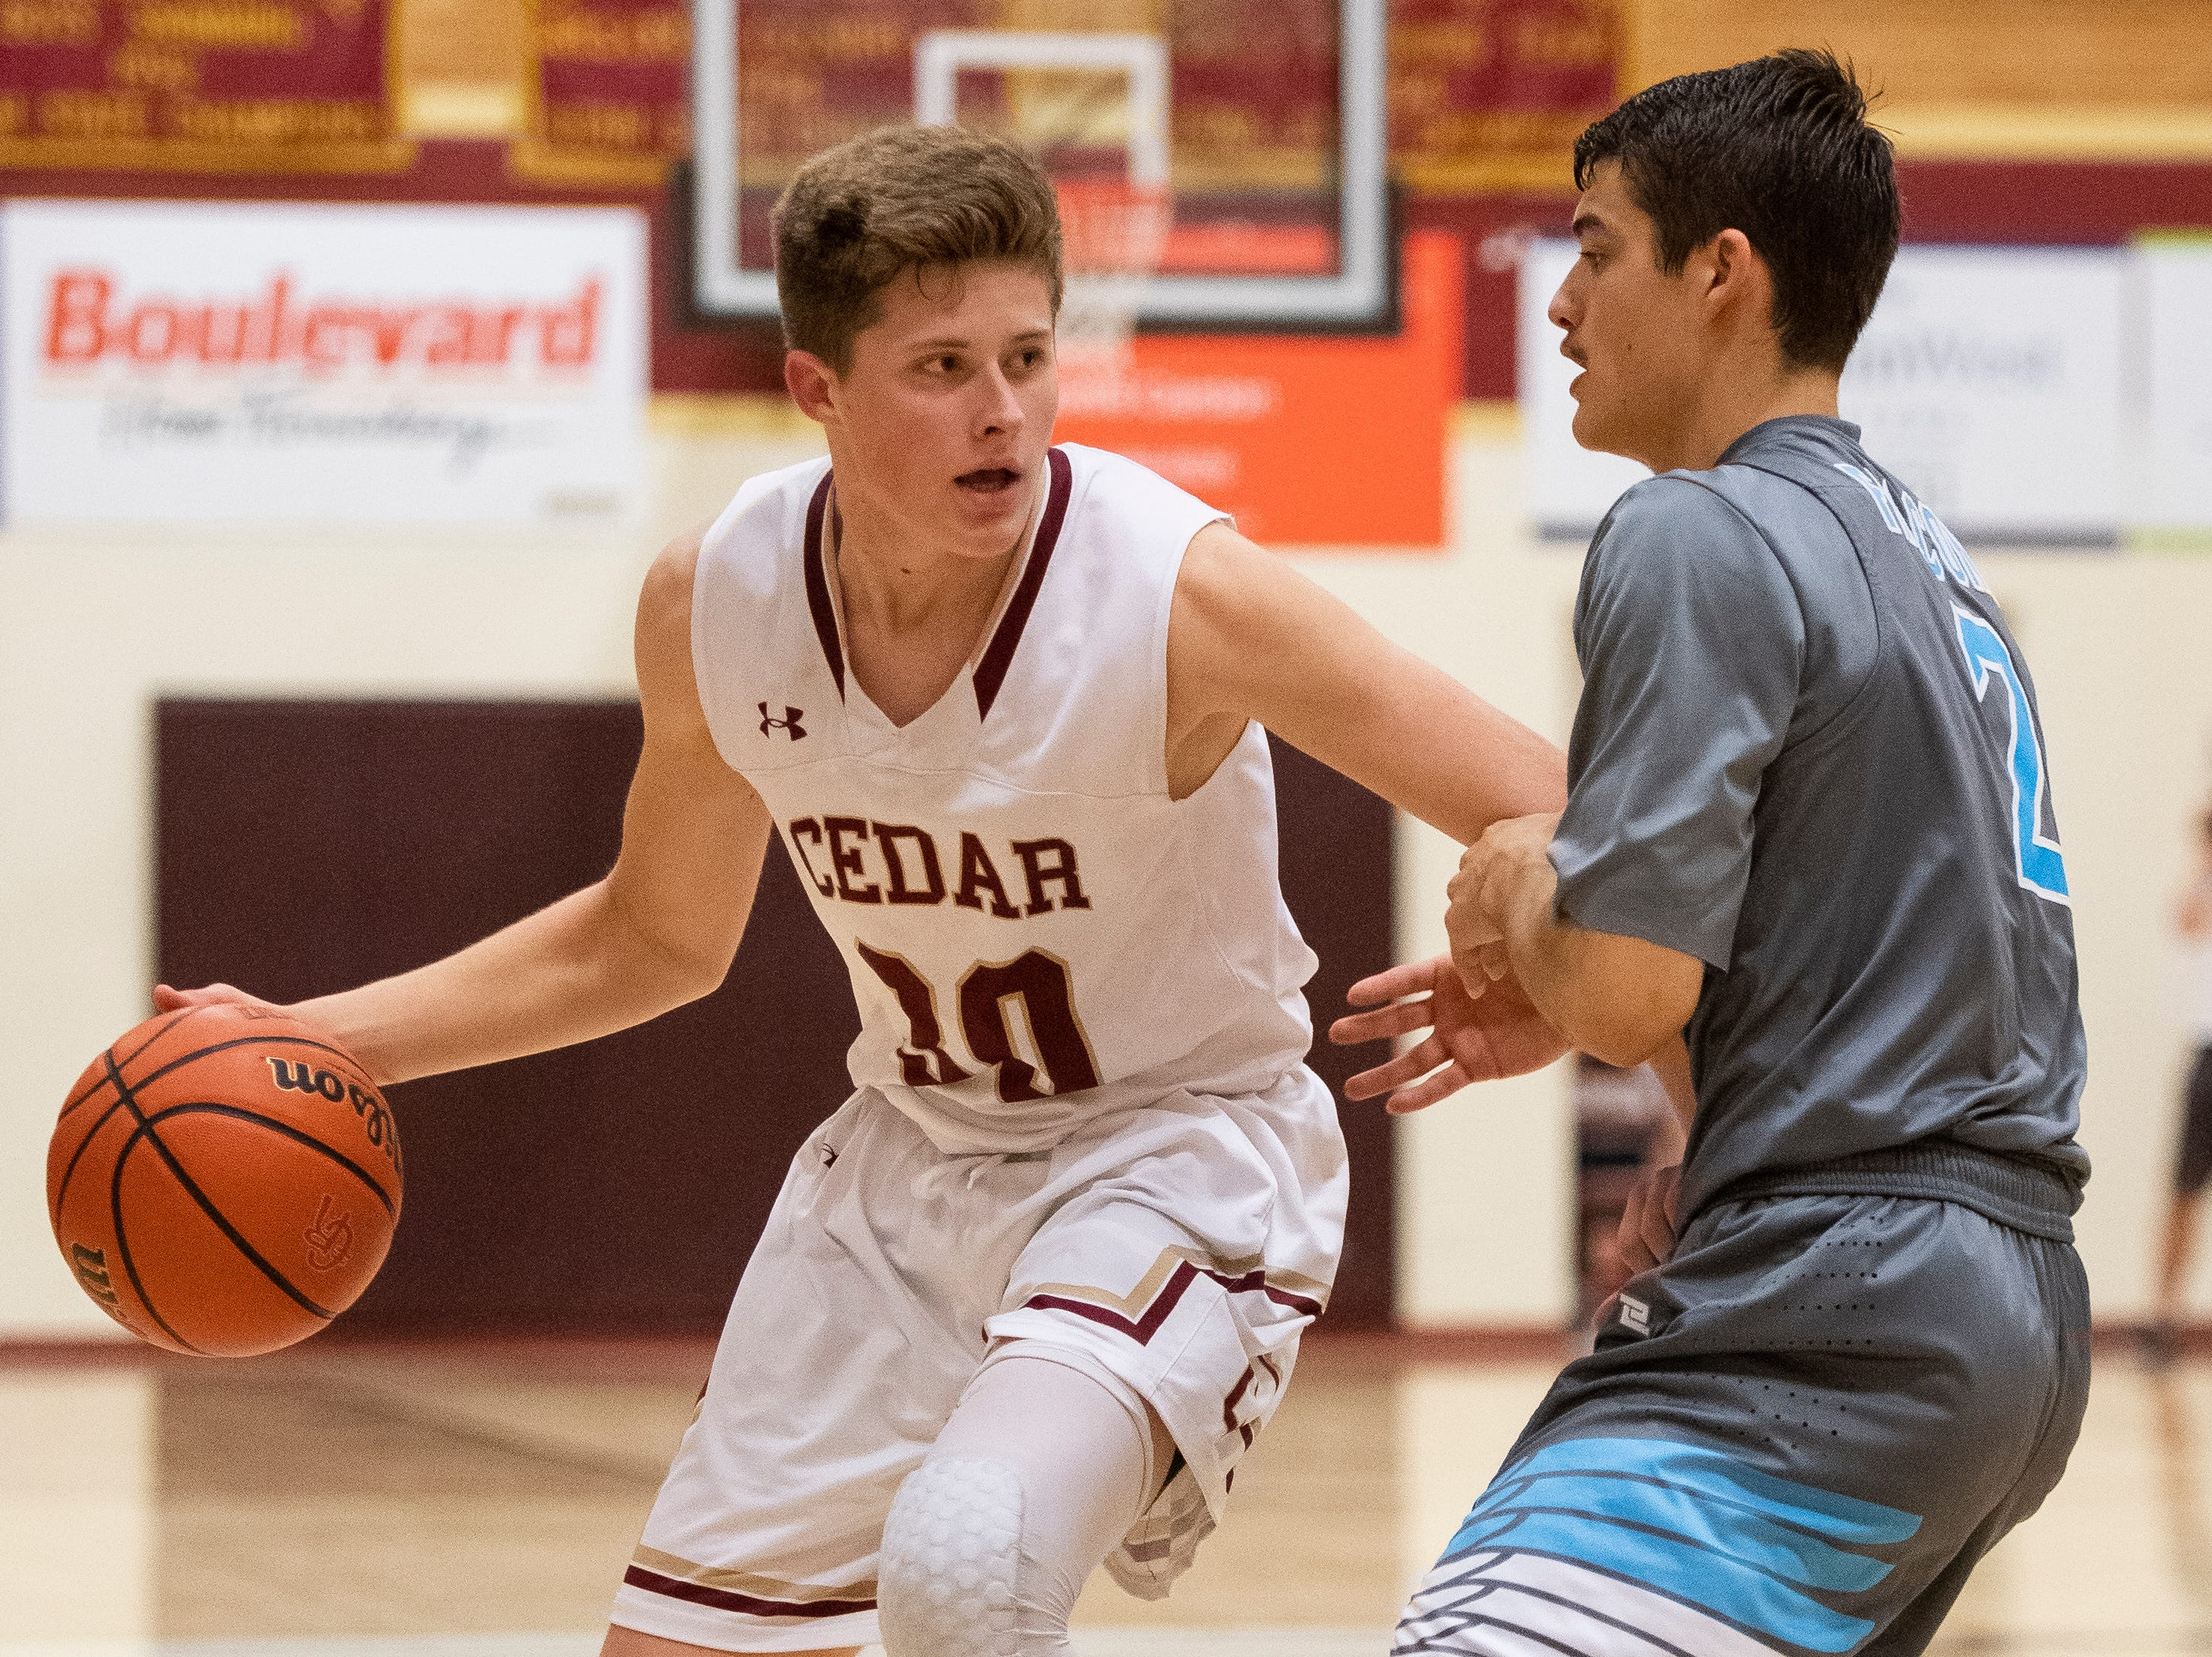 Cedar High School senior Ryan Kite (10) tries to get around Canyon View High School senior Mason Lyman (2) at CHS Friday, January 11, 2019. Canyon View won, 61-56.